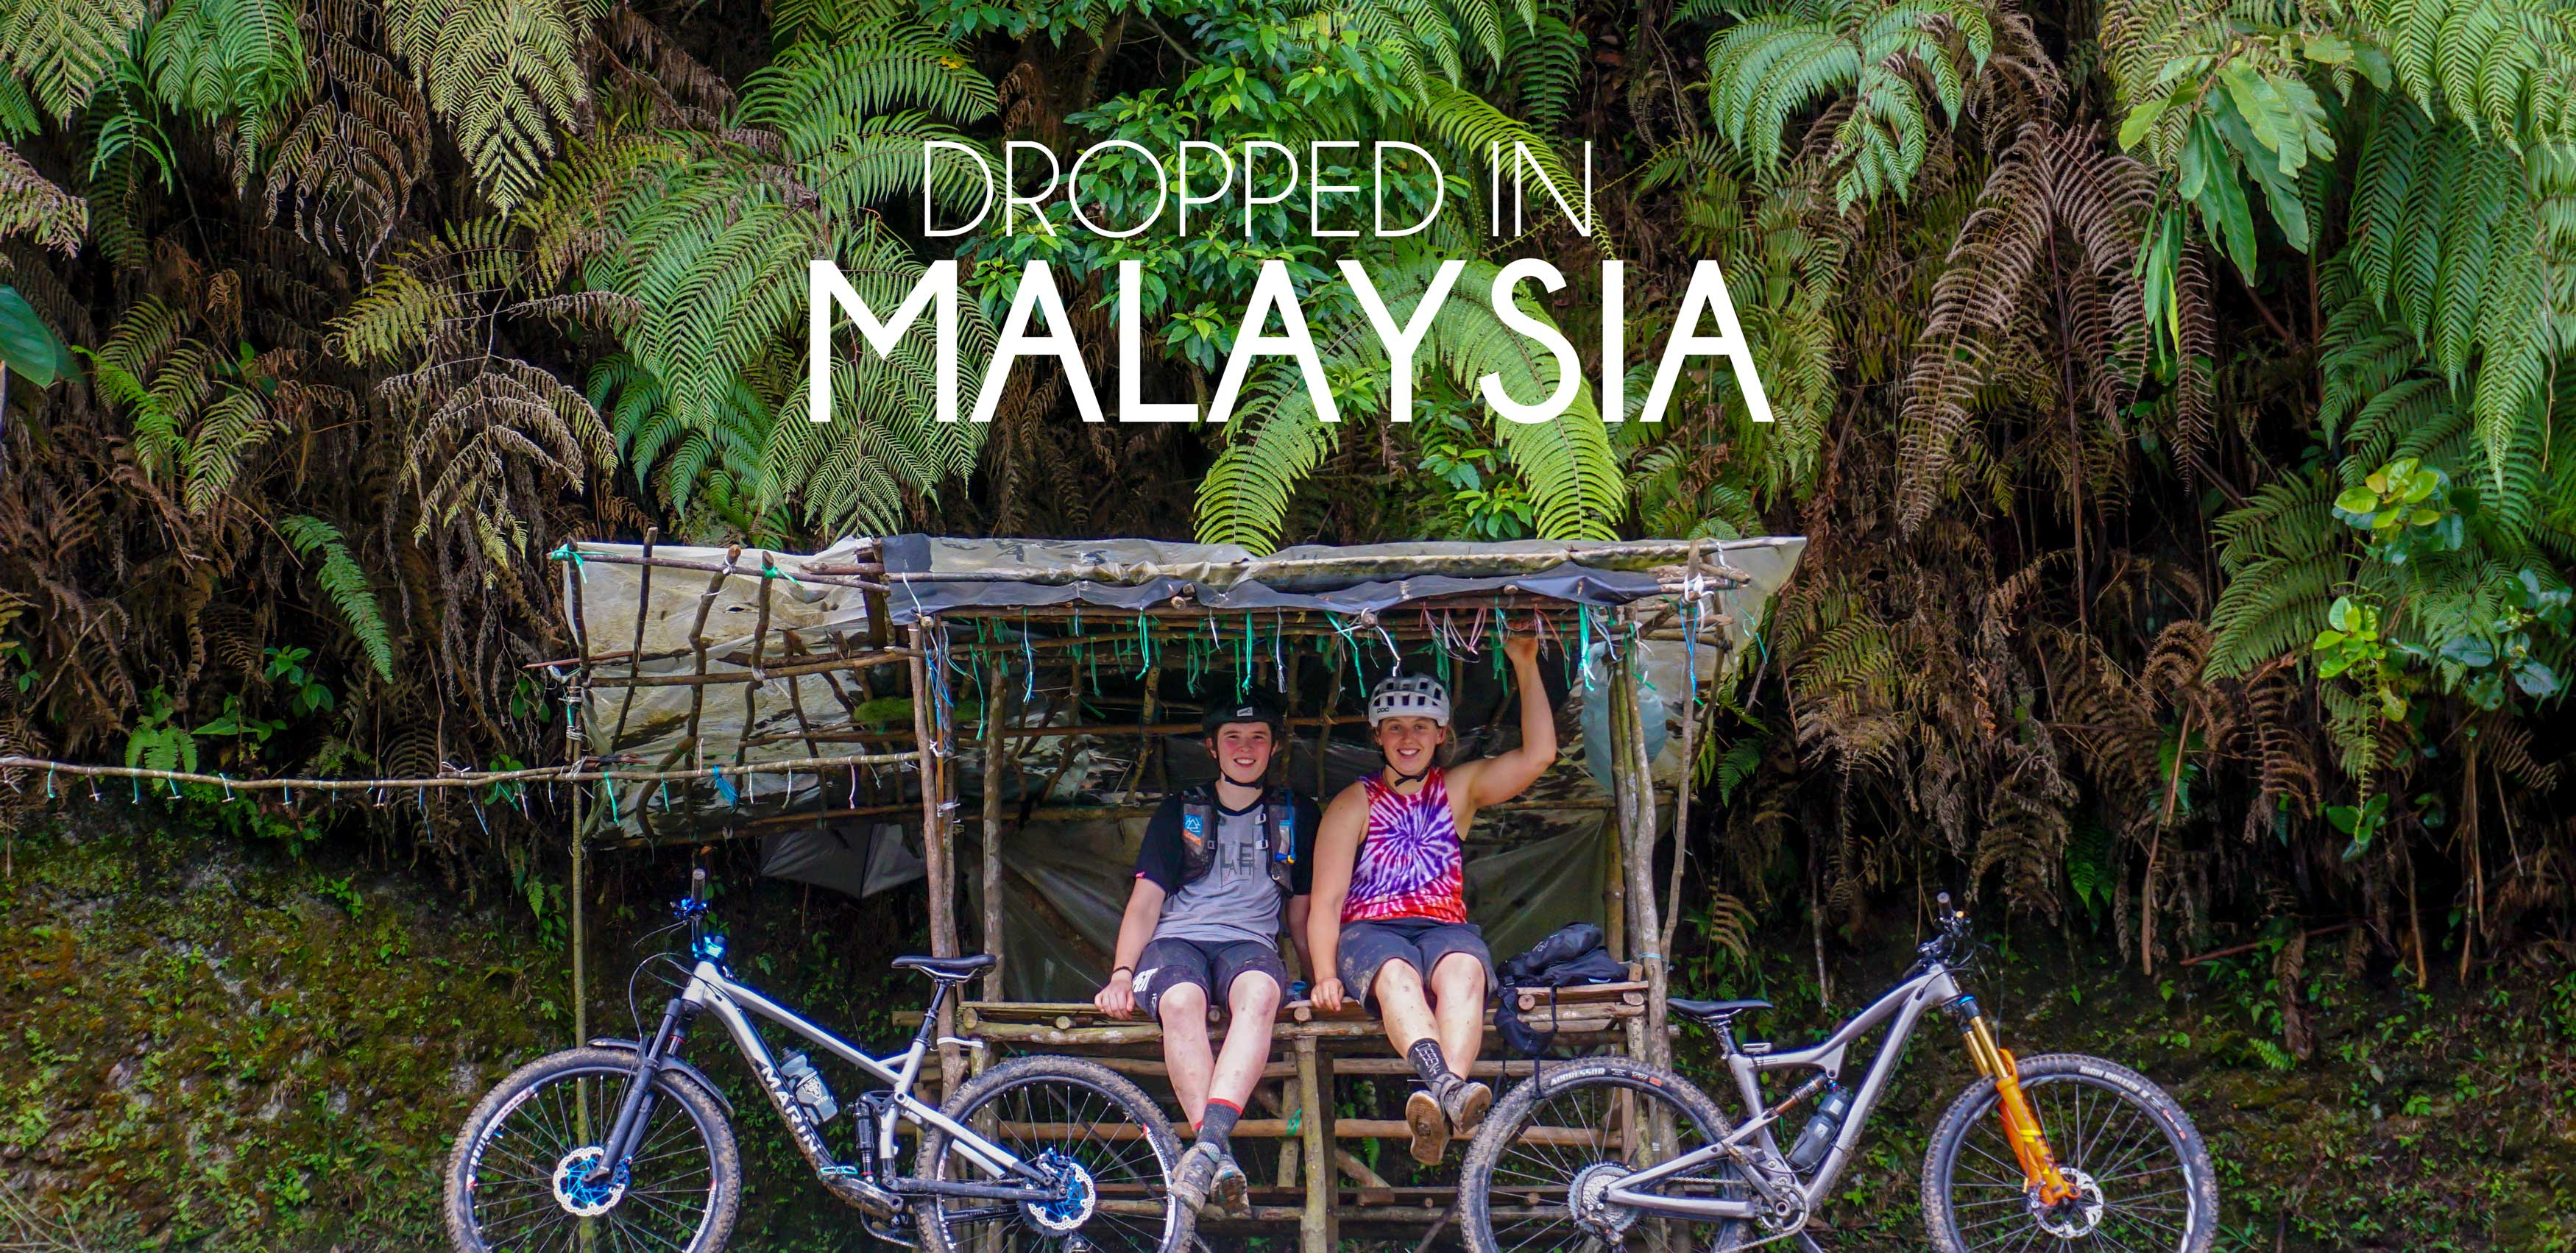 Dropped in Malaysia - Gowaan Gals